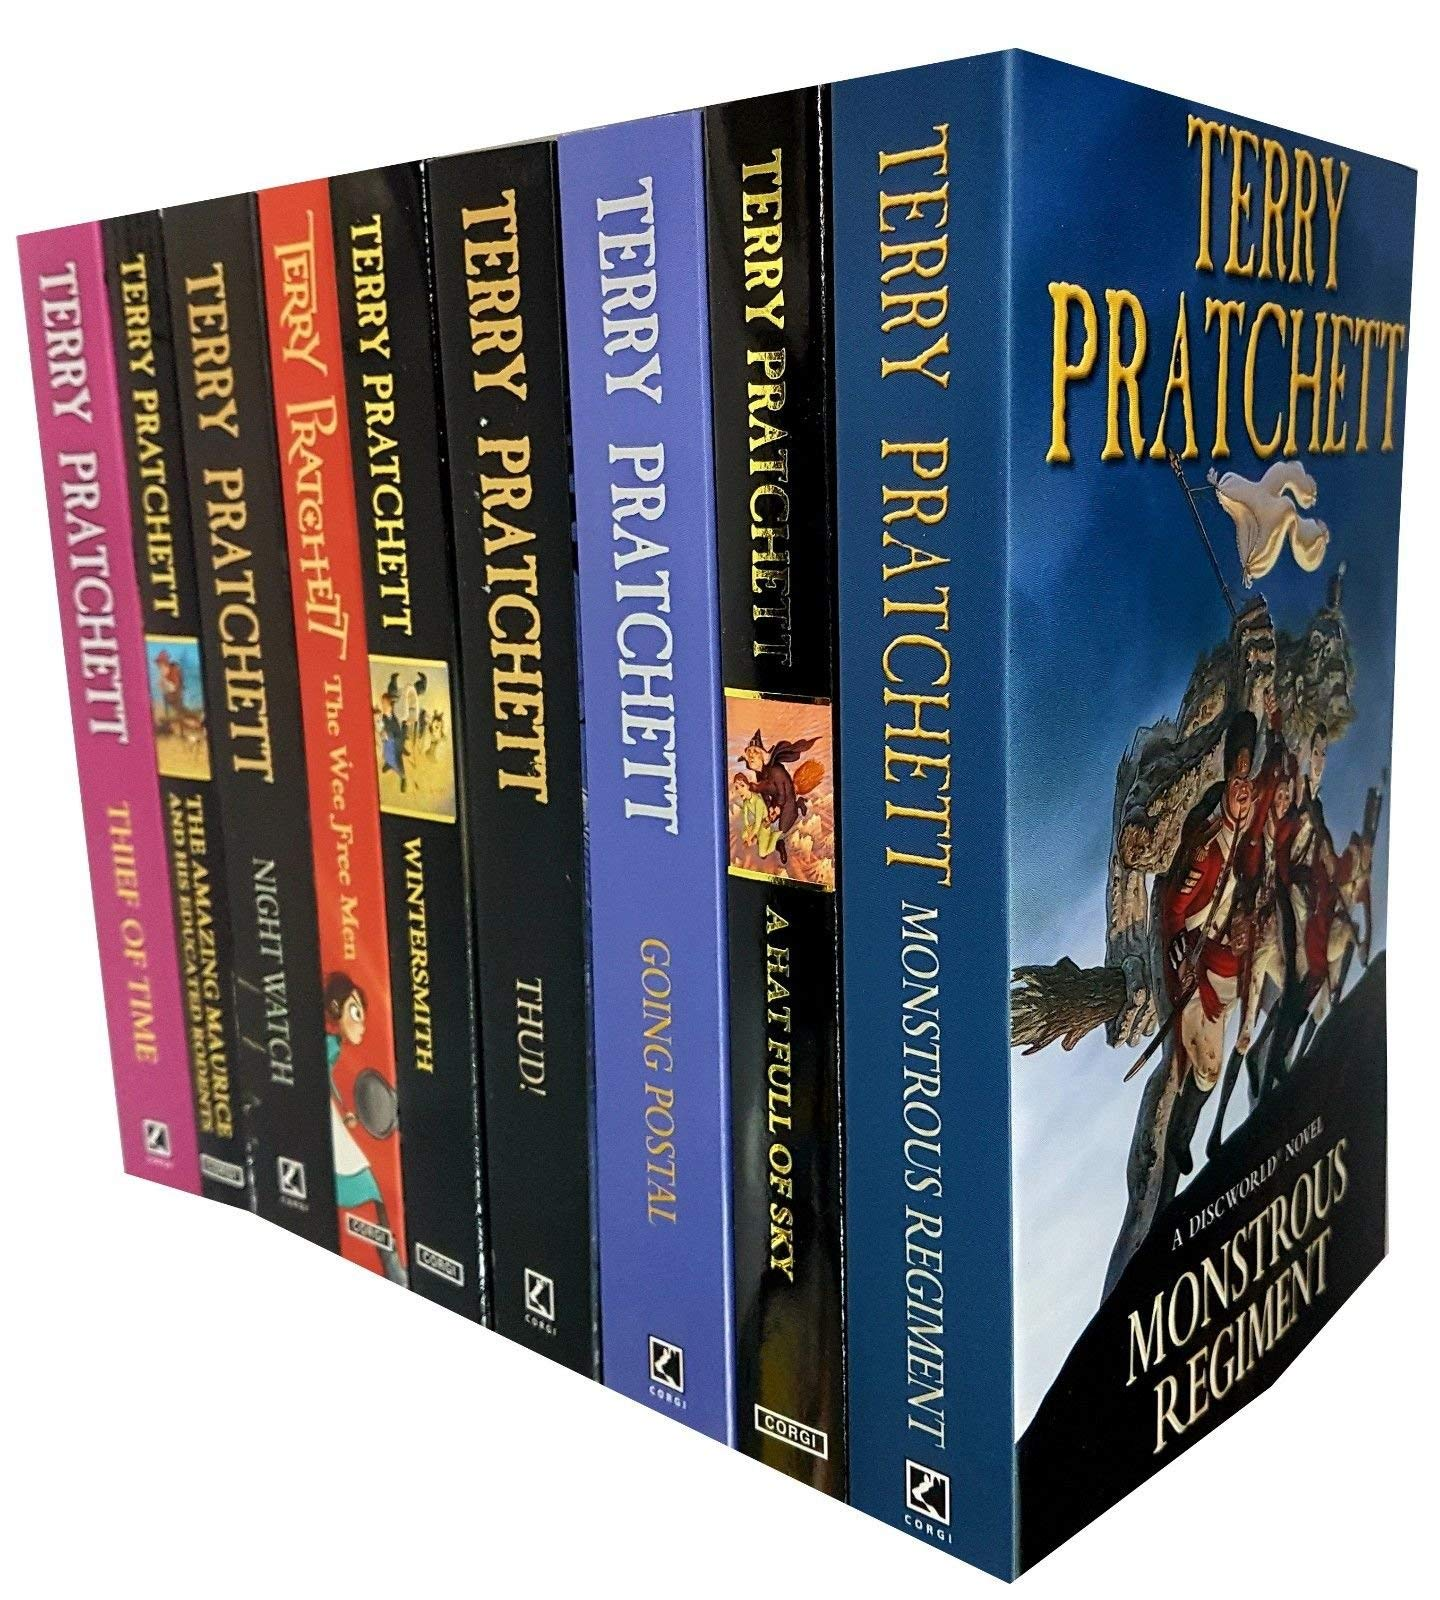 Terry Pratchett Discworld Collection 7 Books Set